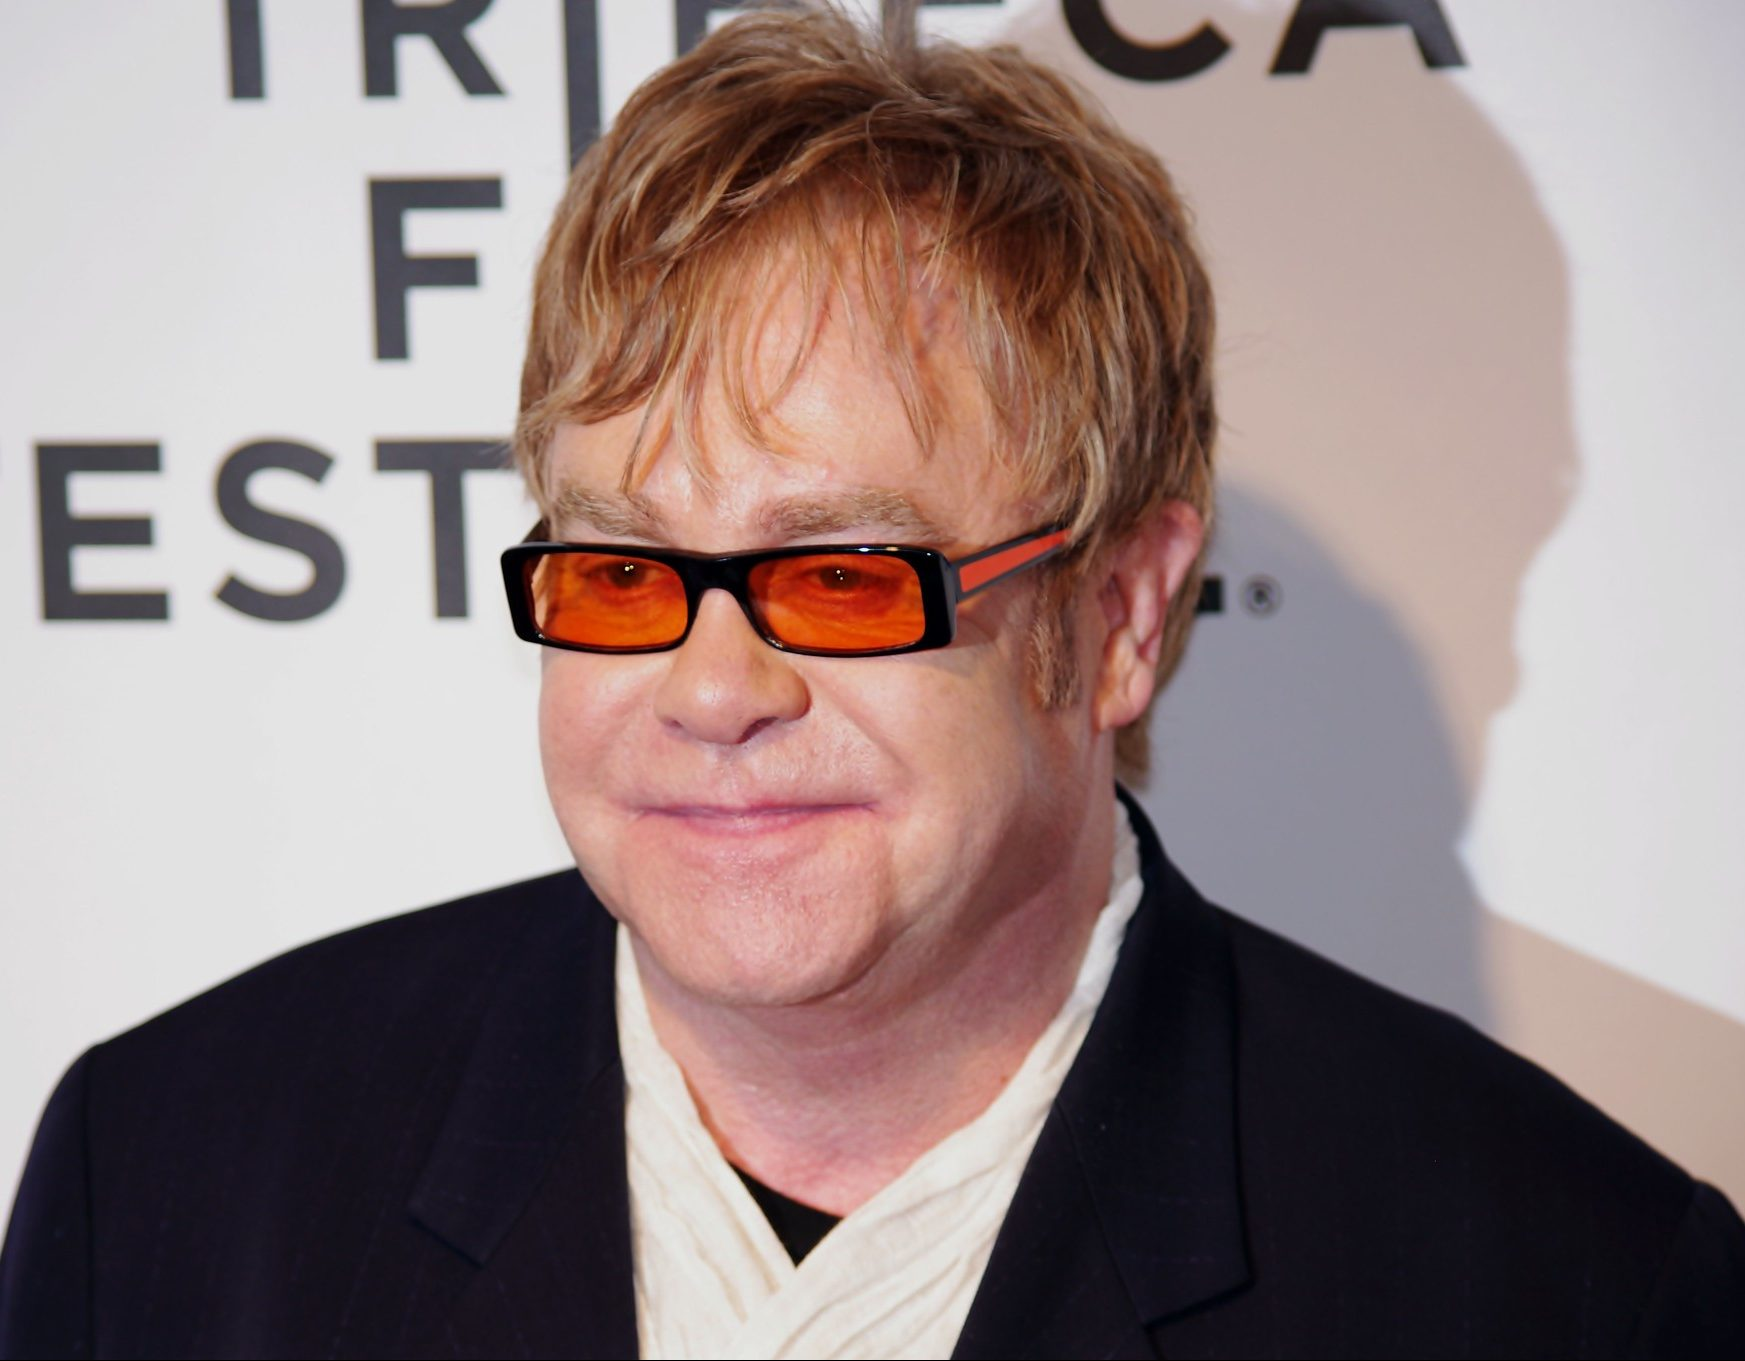 5641860277 d5f09d0130 k e1616662998244 23 Things You Didn't Know About Elton John